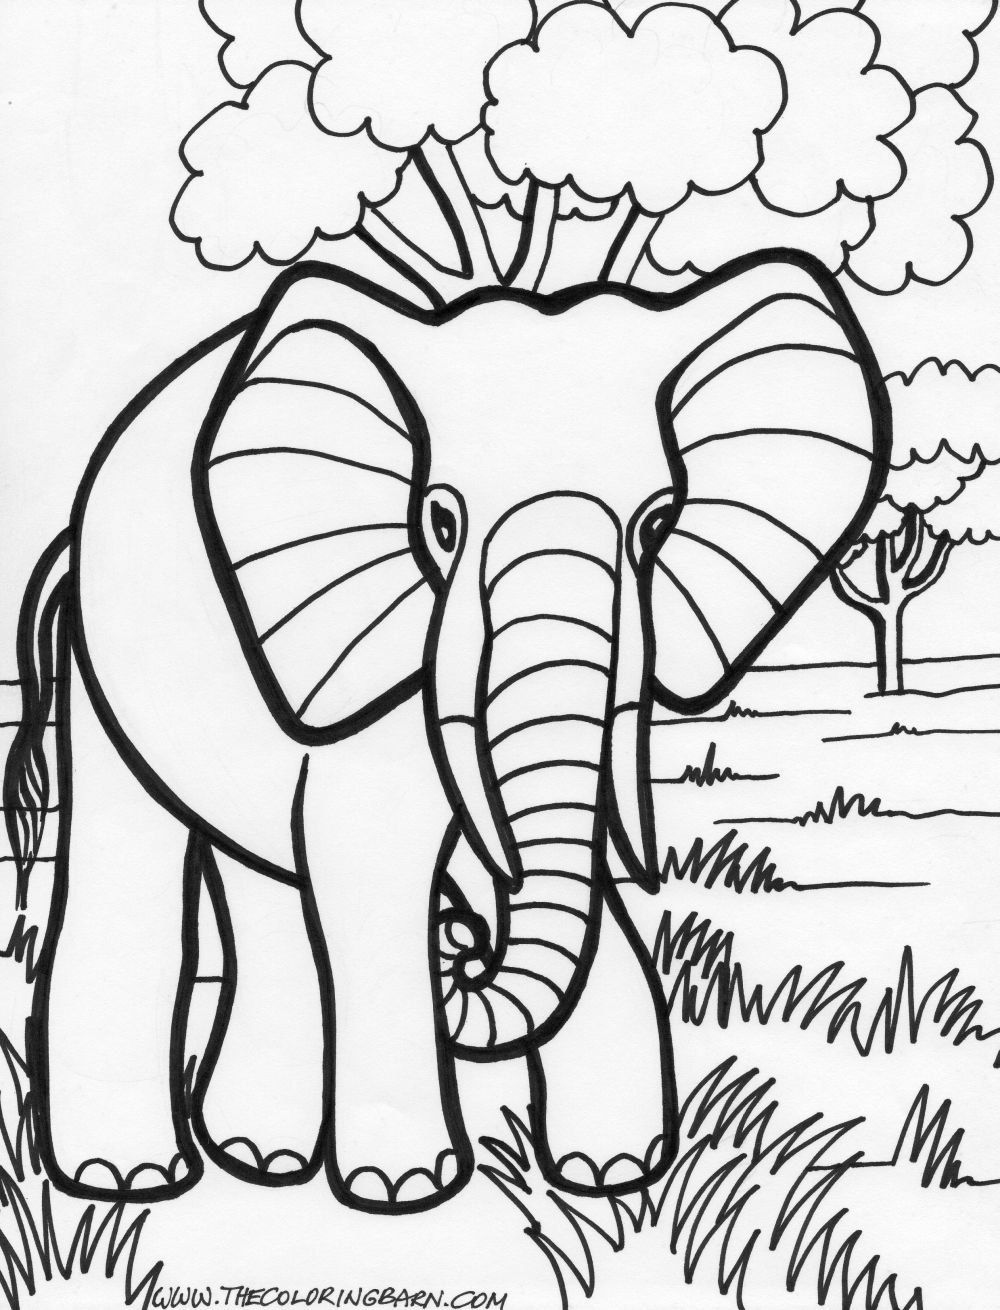 printable elephant coloring pages print download teaching kids through elephant coloring printable coloring pages elephant